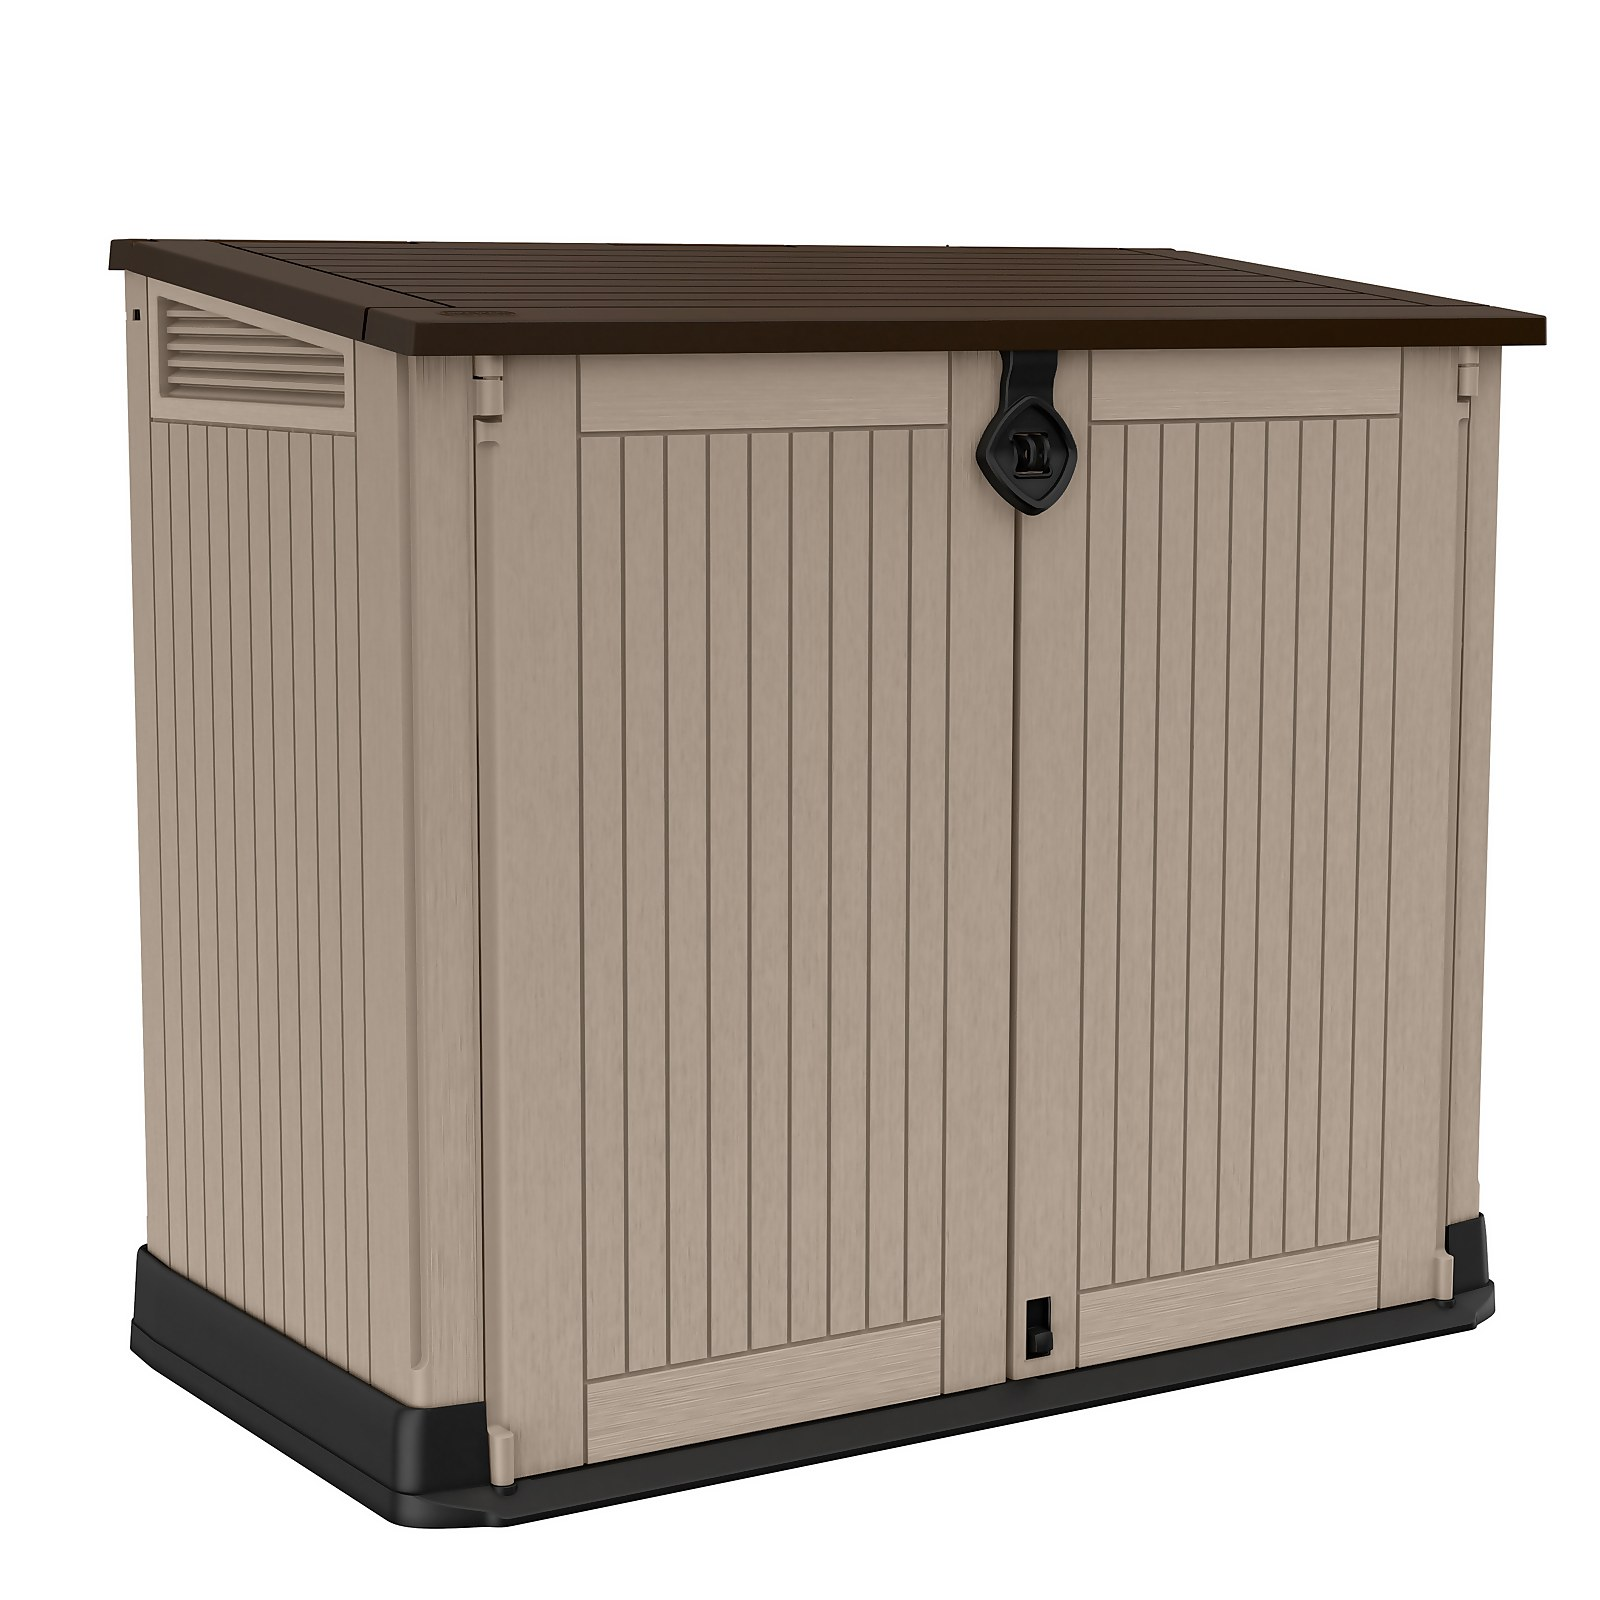 Keter Store It Out Midi Outdoor Garden Storage Shed 880L - Beige/Brown